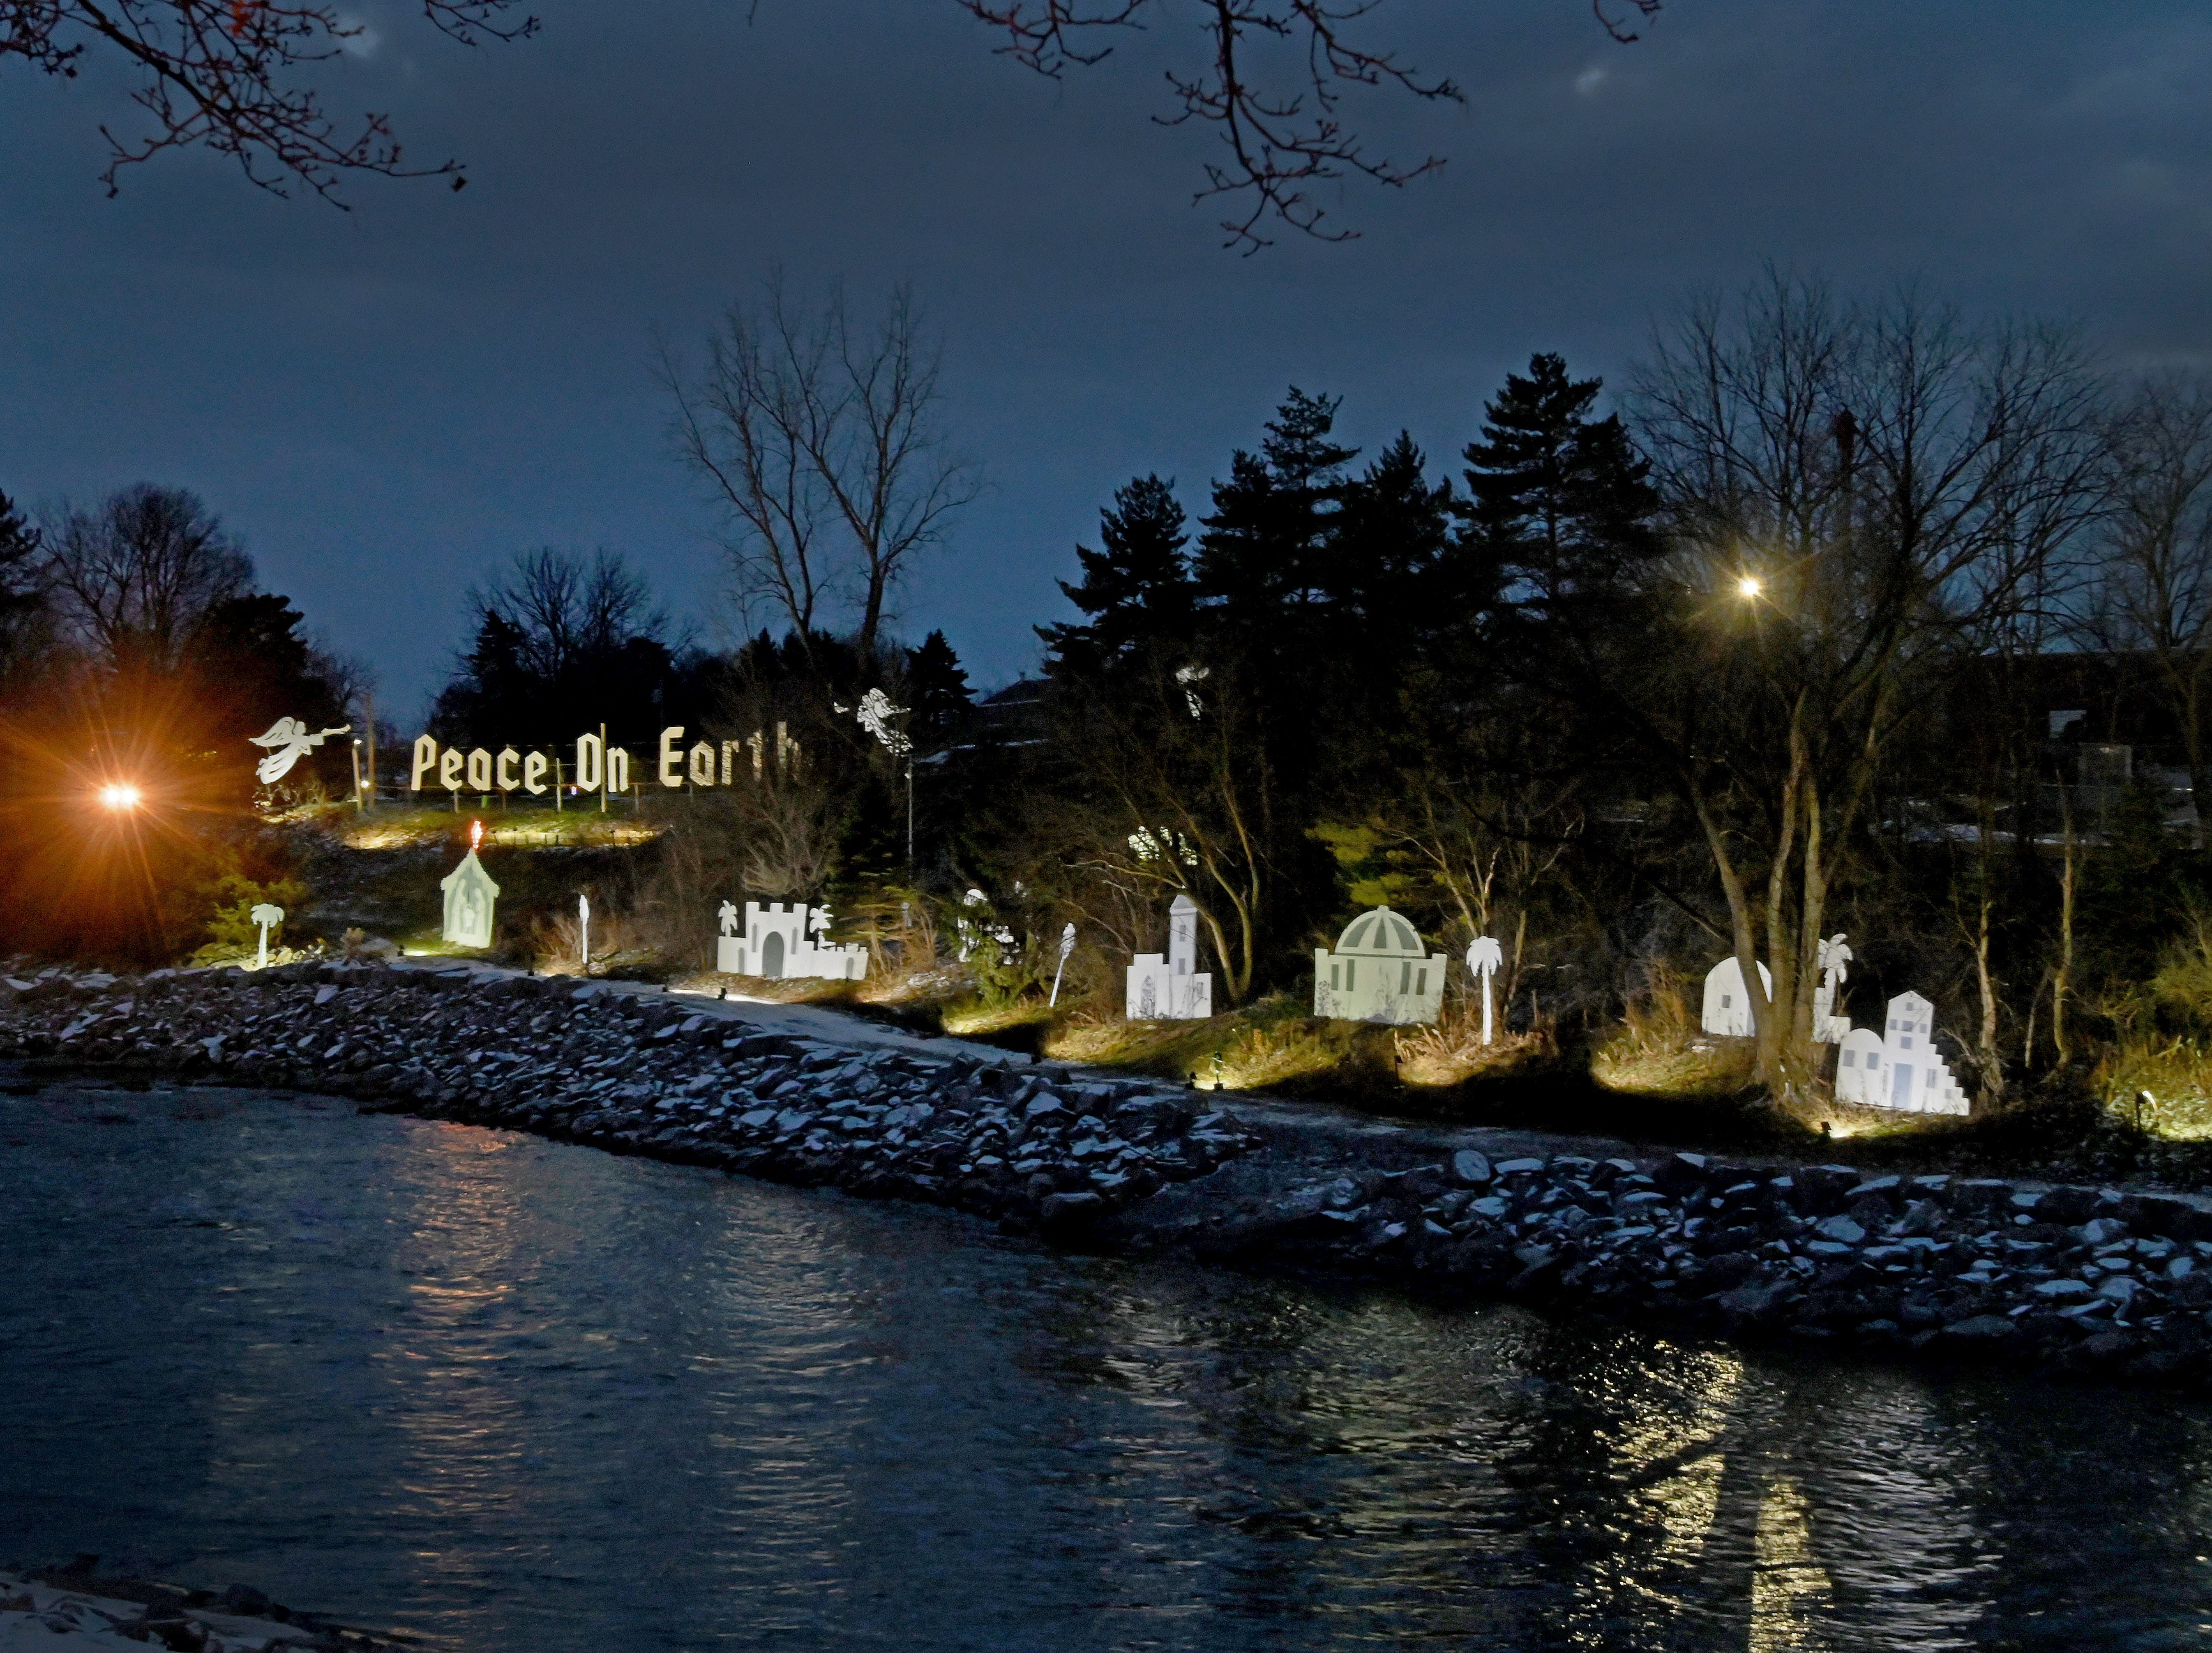 A Christmas display on the banks of the Cass River in Frankenmuth sends a message of peace.